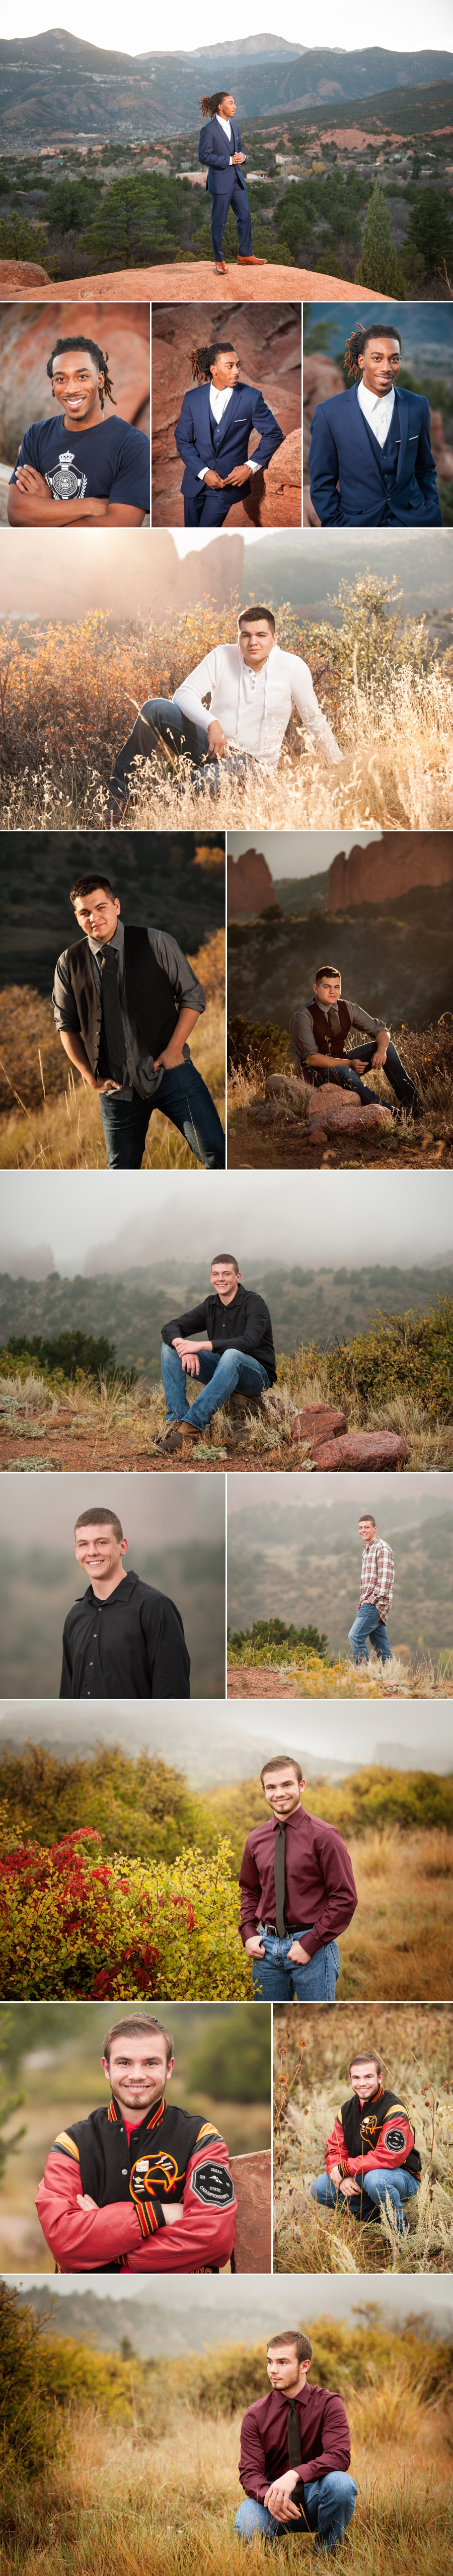 Mini-sessions Garden of the Gods Jonathan Betz Photography High School Senior Photographer 1